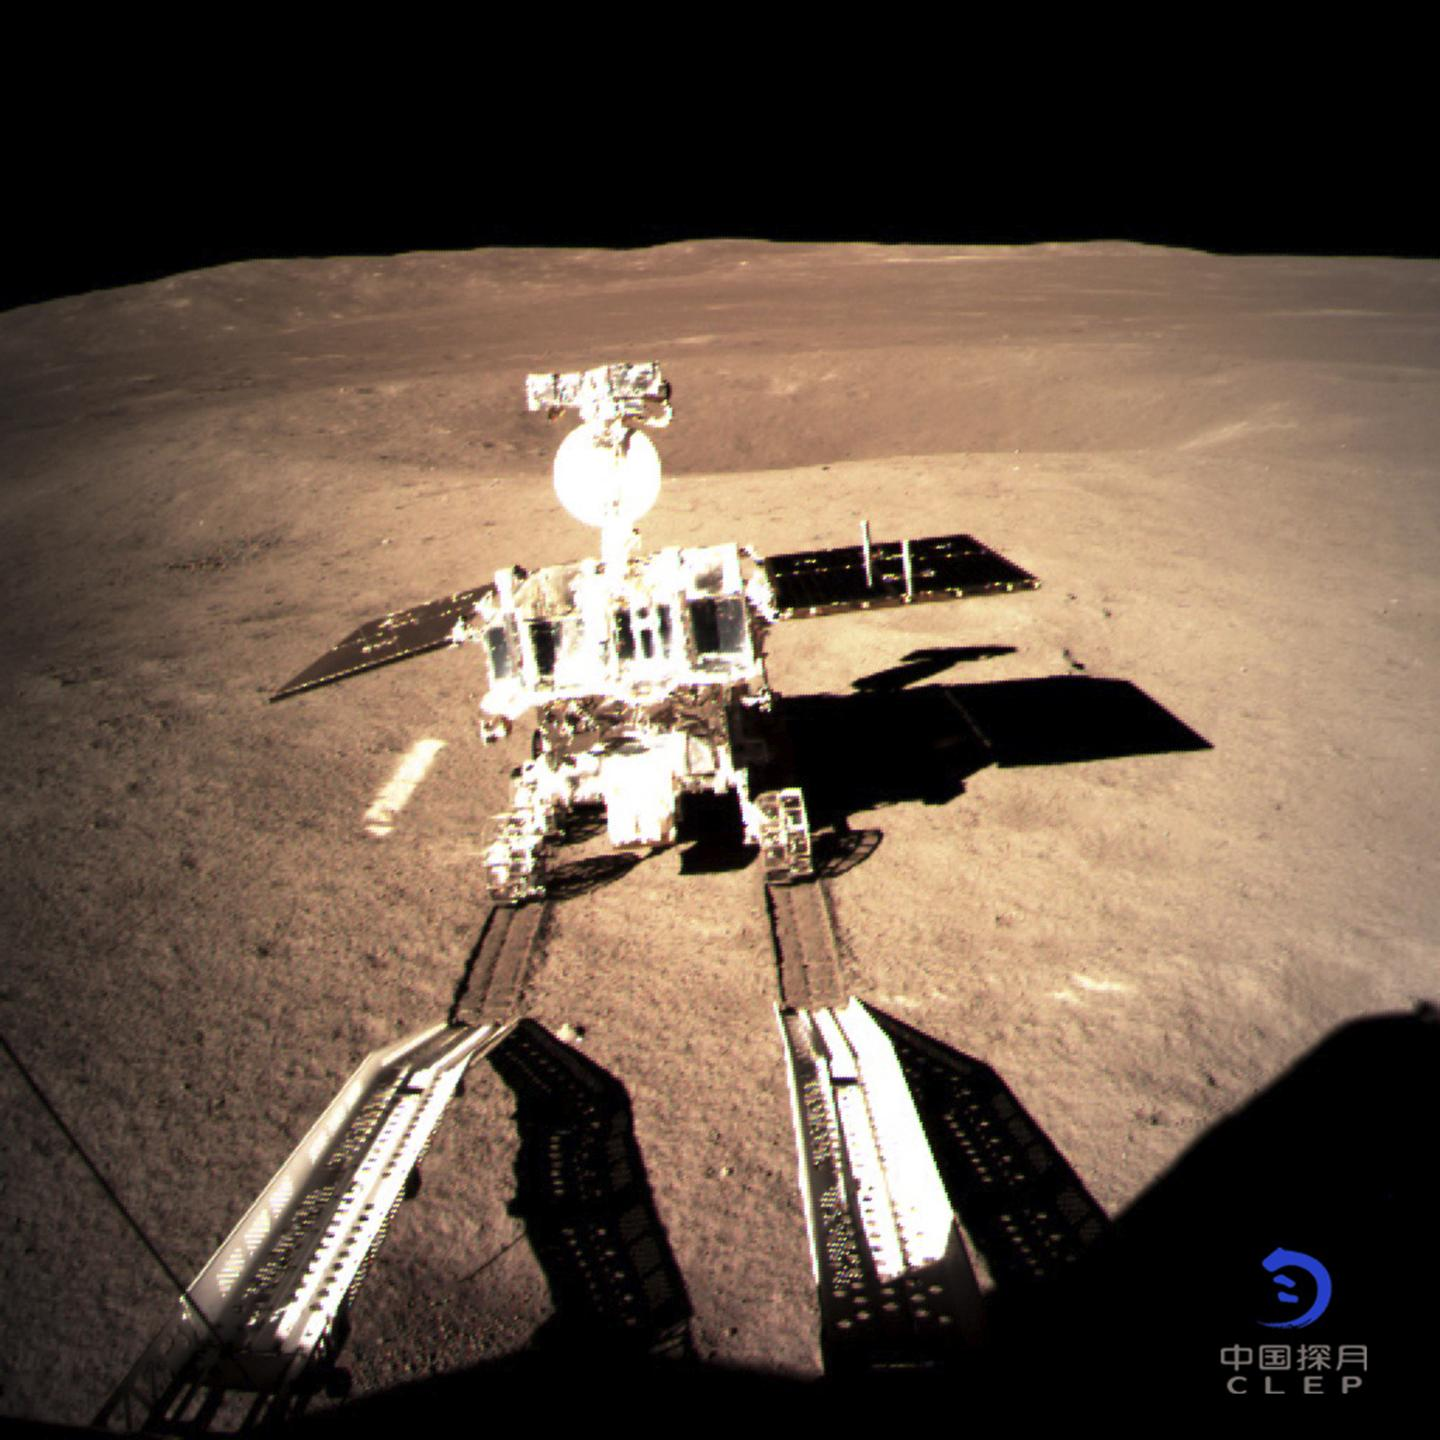 China's Giant Leap Into a New Space Race